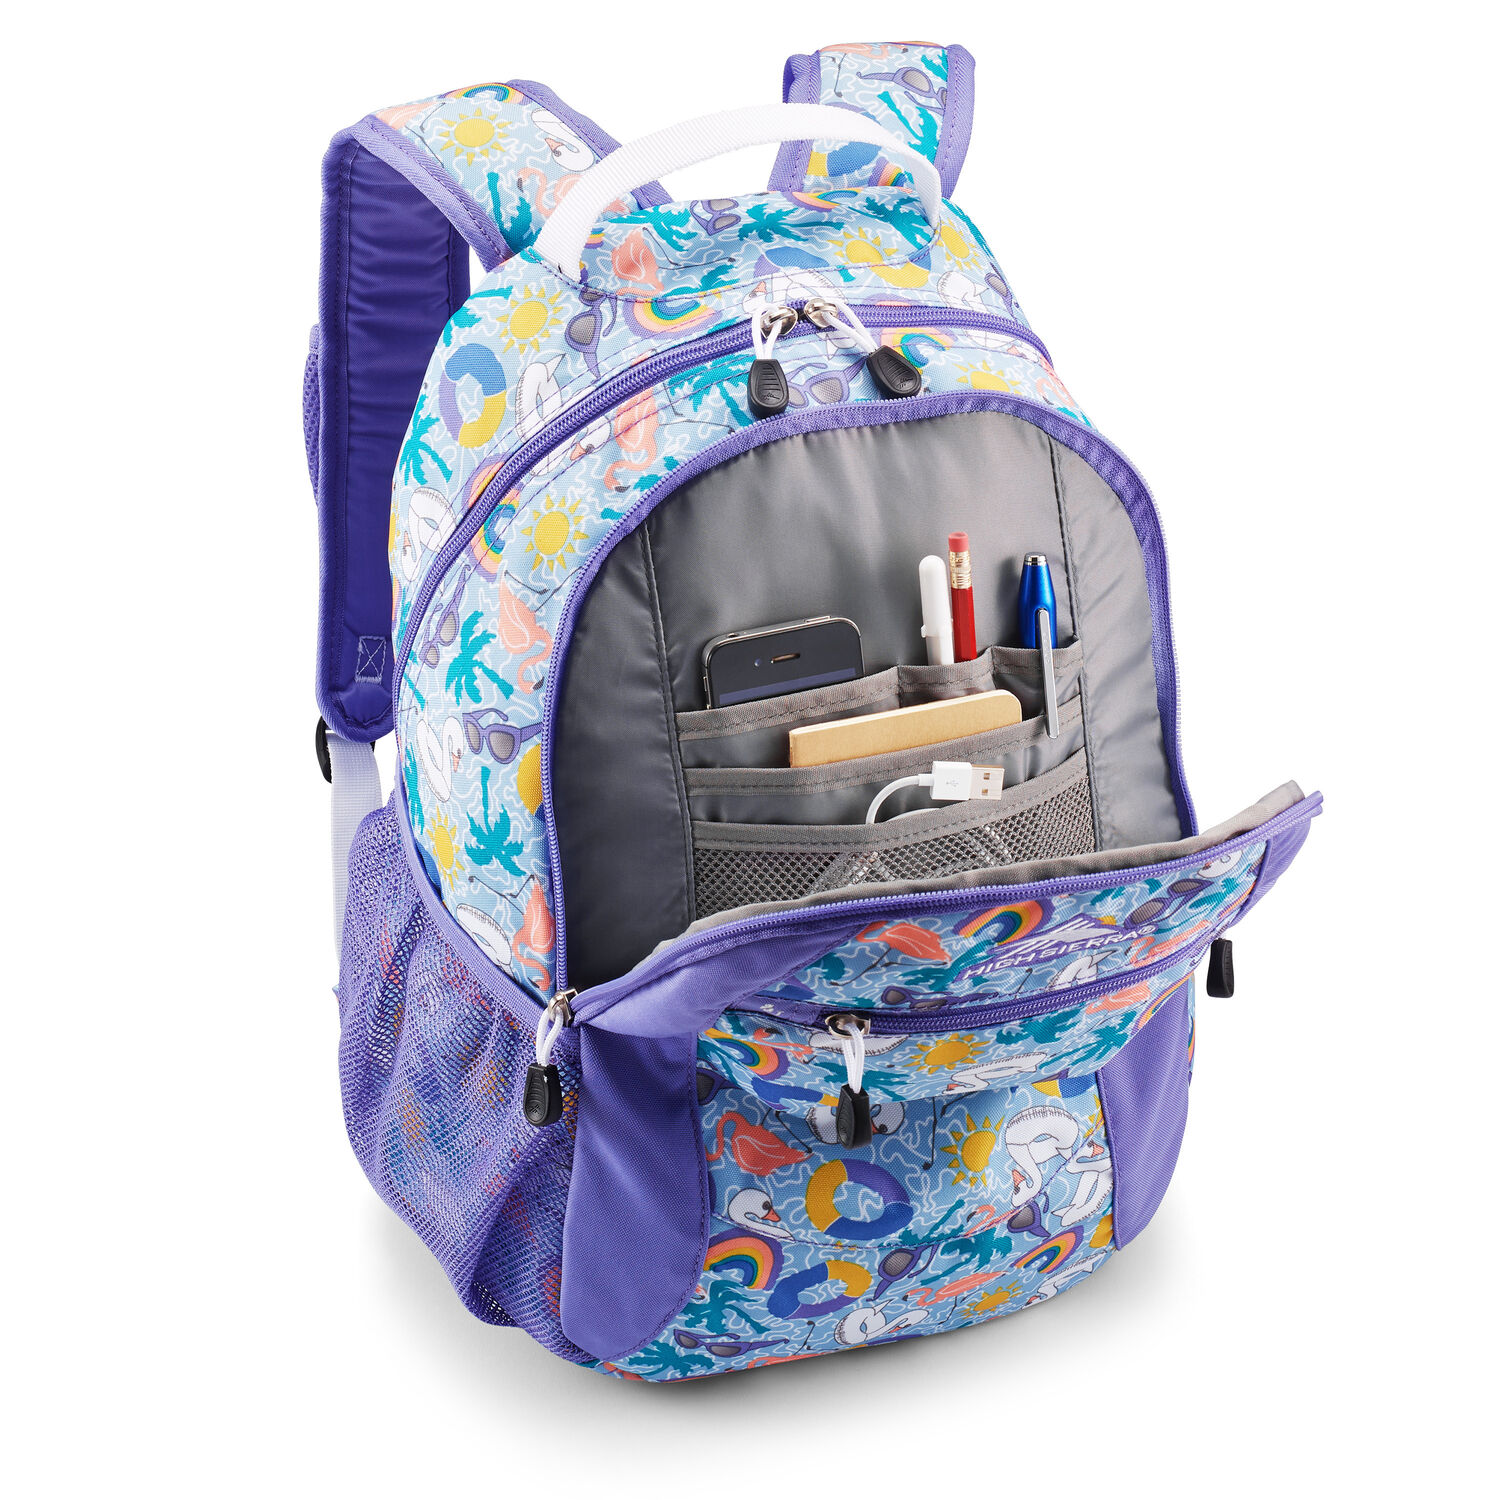 32b9d5fca High Sierra Curve Backpack in the color Pool Party/Lavender/White.